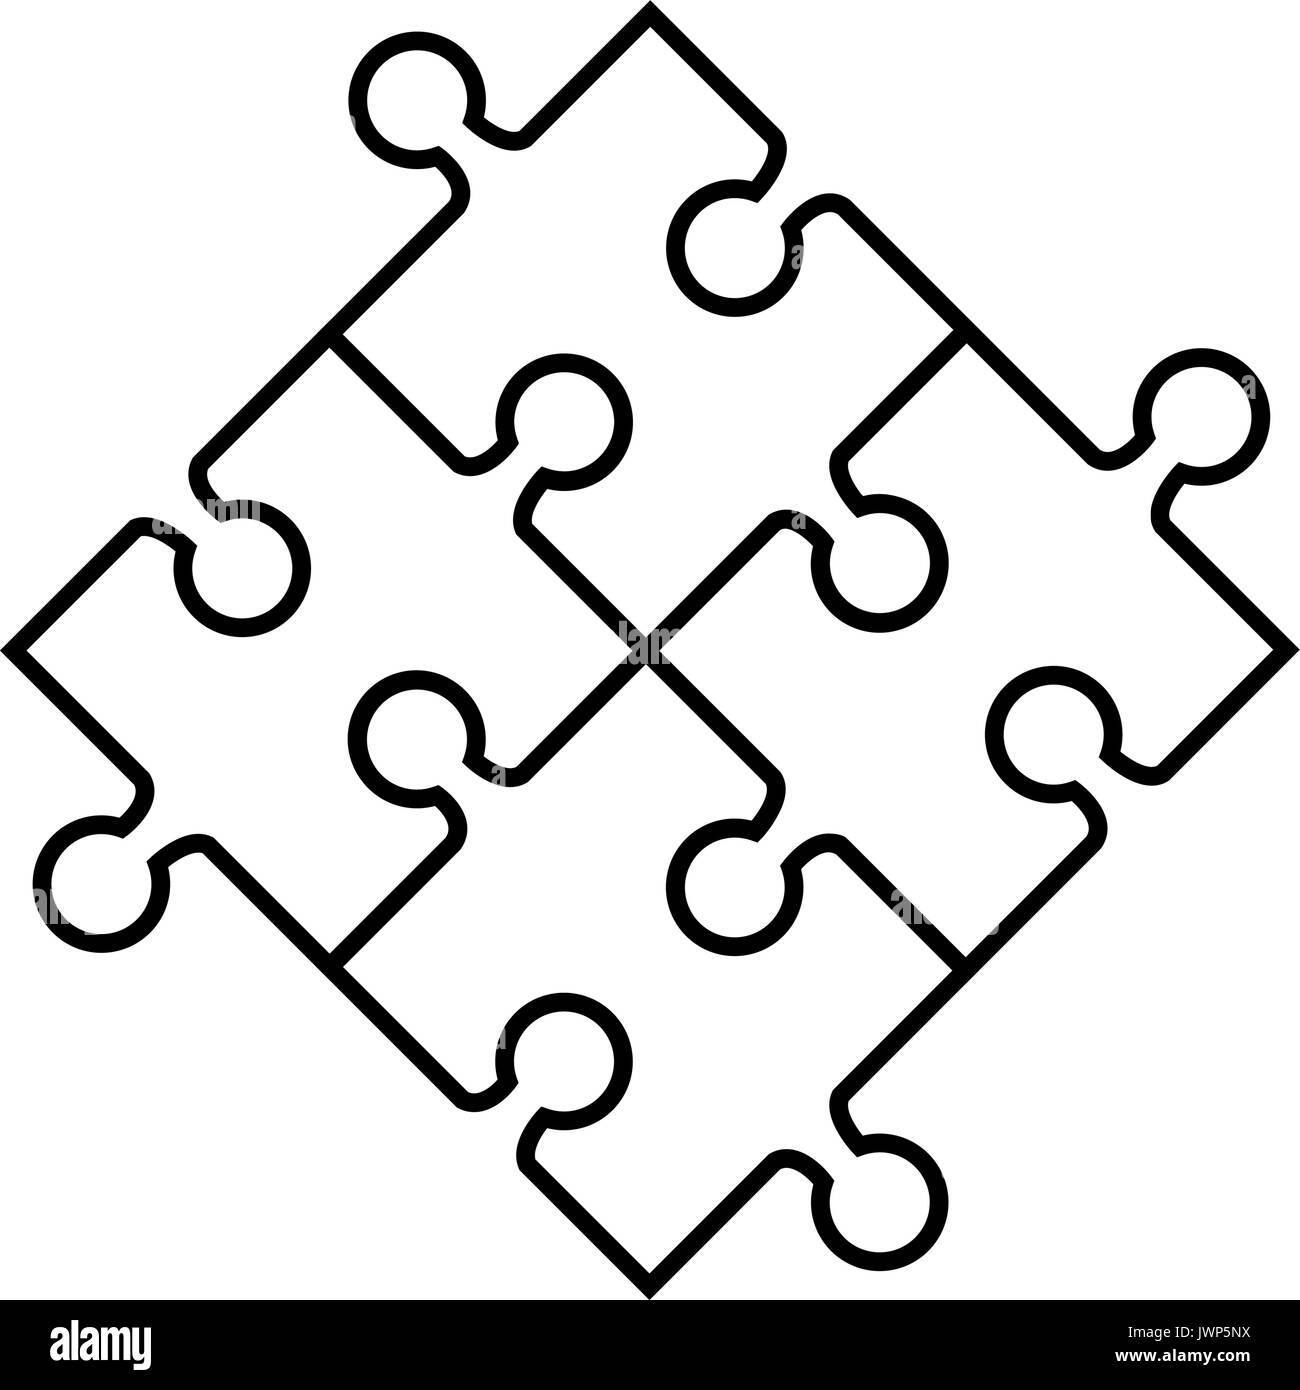 Jigsaw Puzzles Icon Over White Background Vector Illustration